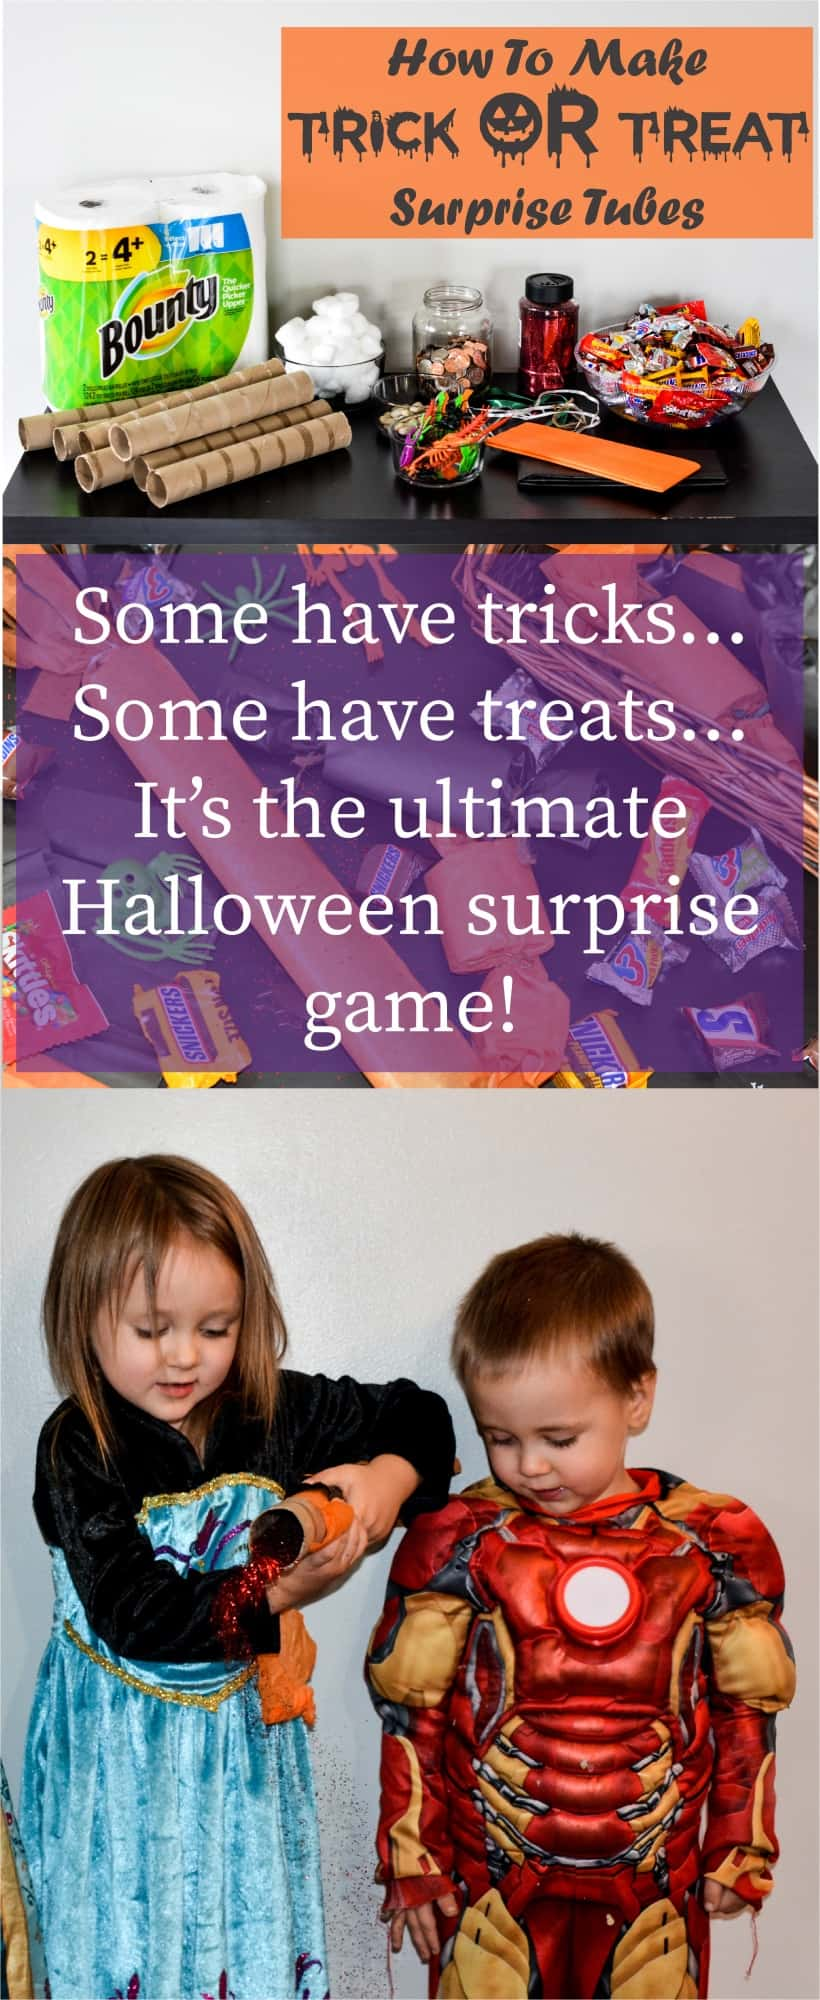 Trick OR Treat Surprise Tubes